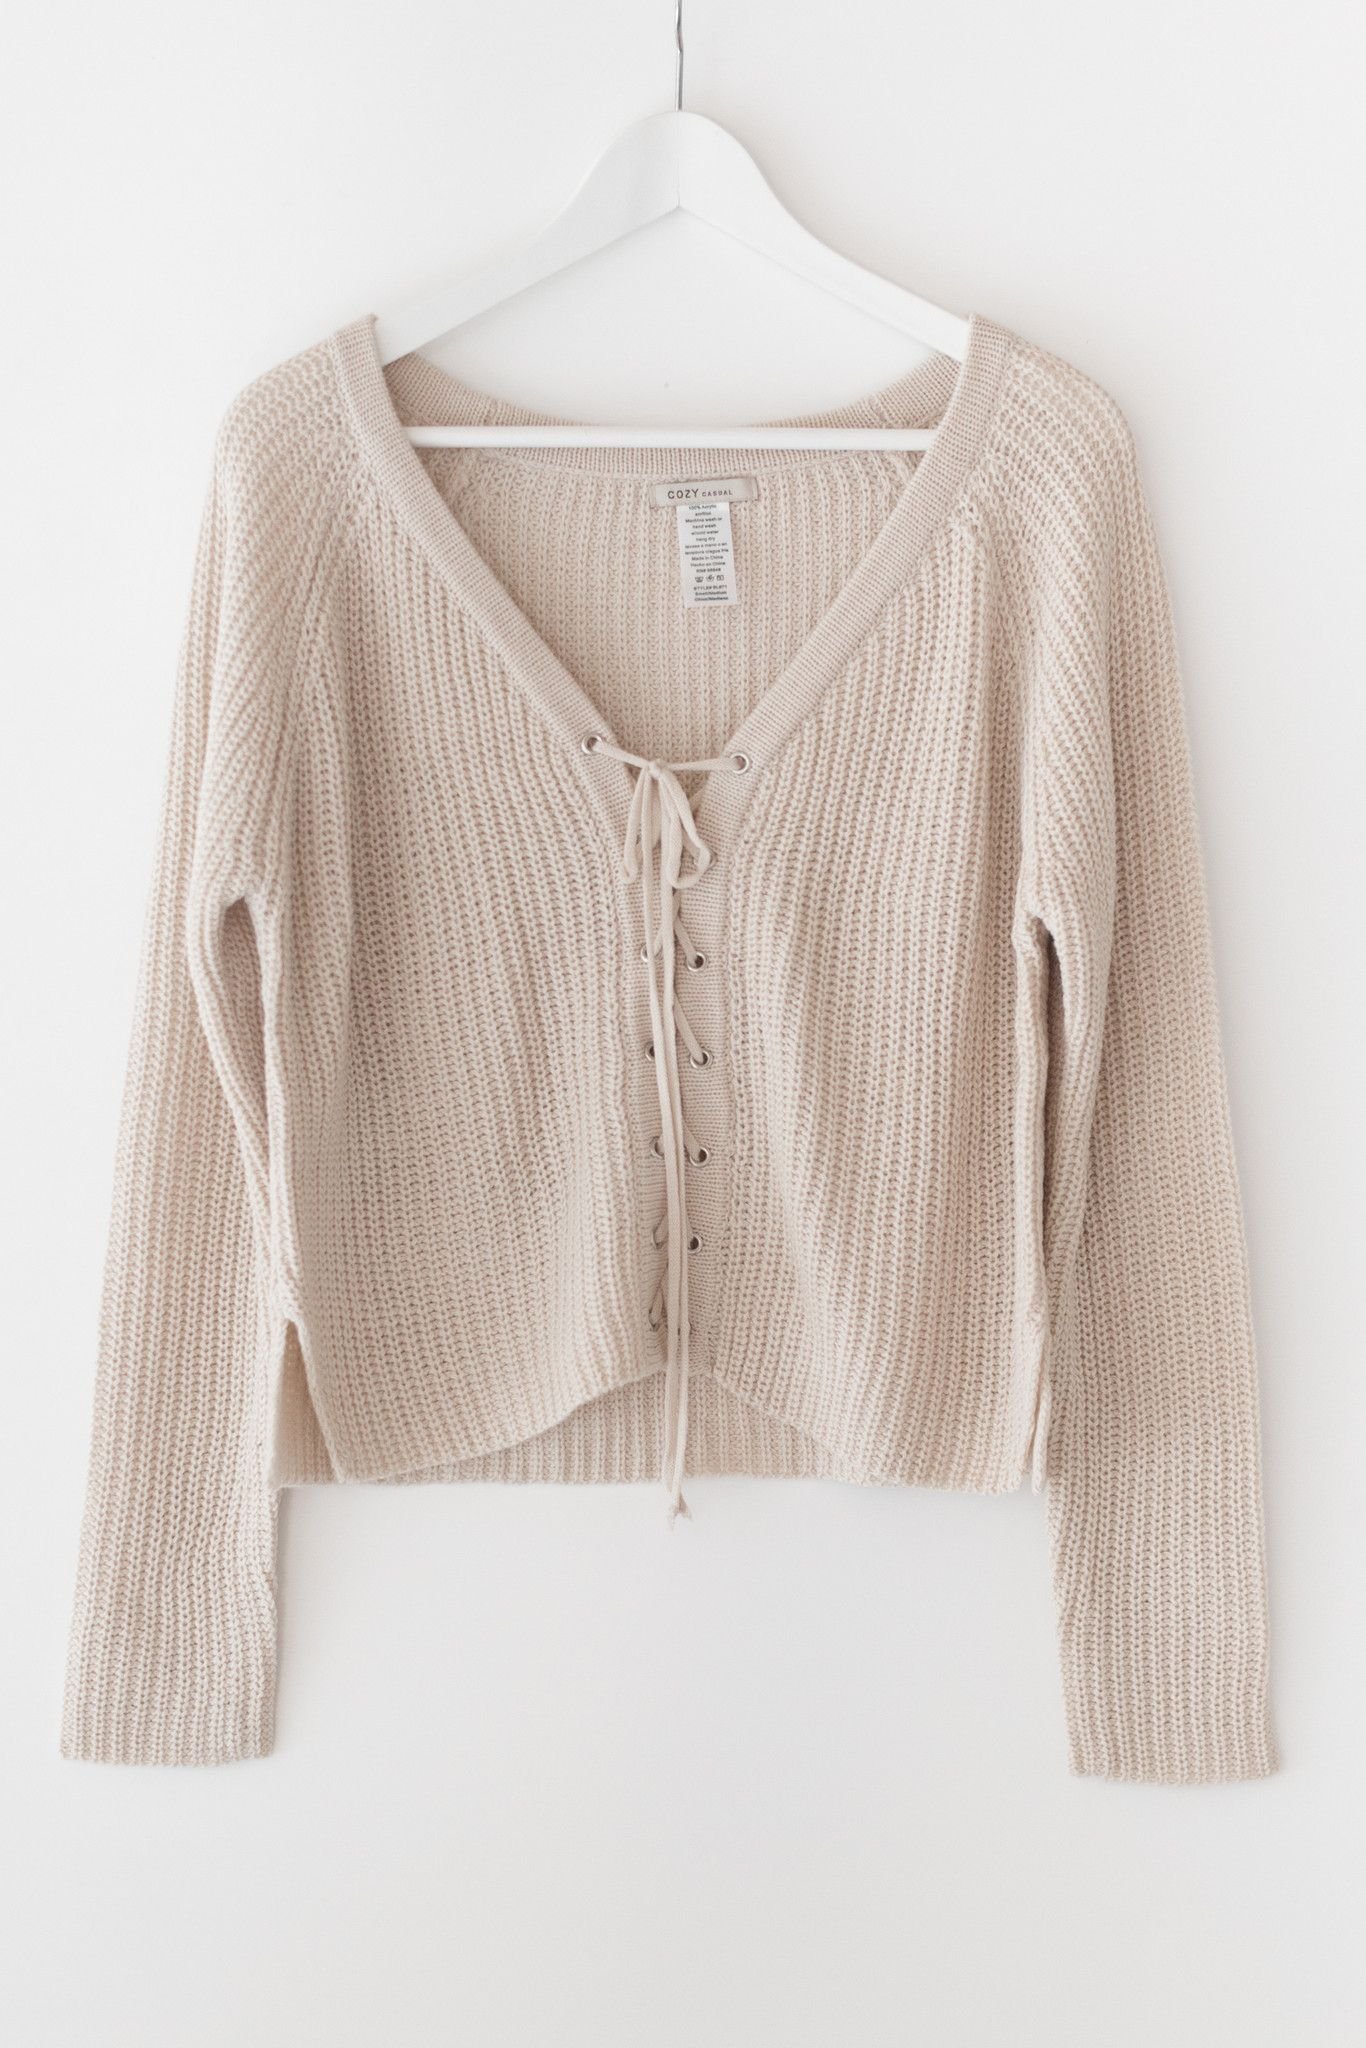 Nude oversized front lace-up sweater - Chunky sweater knit ...